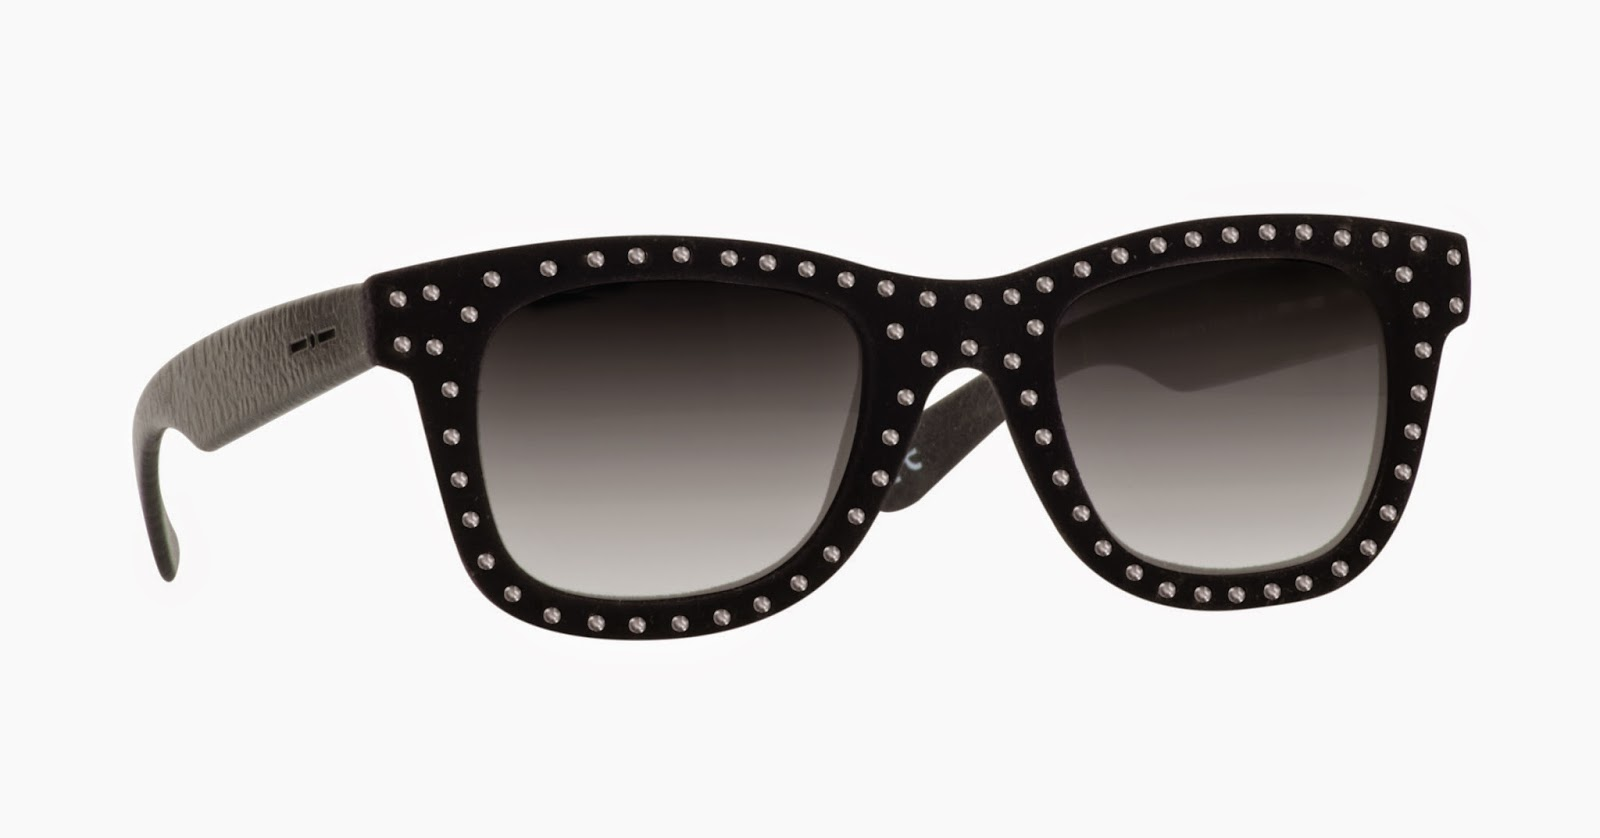 Lunettes Mlle extravagance, rose chaud